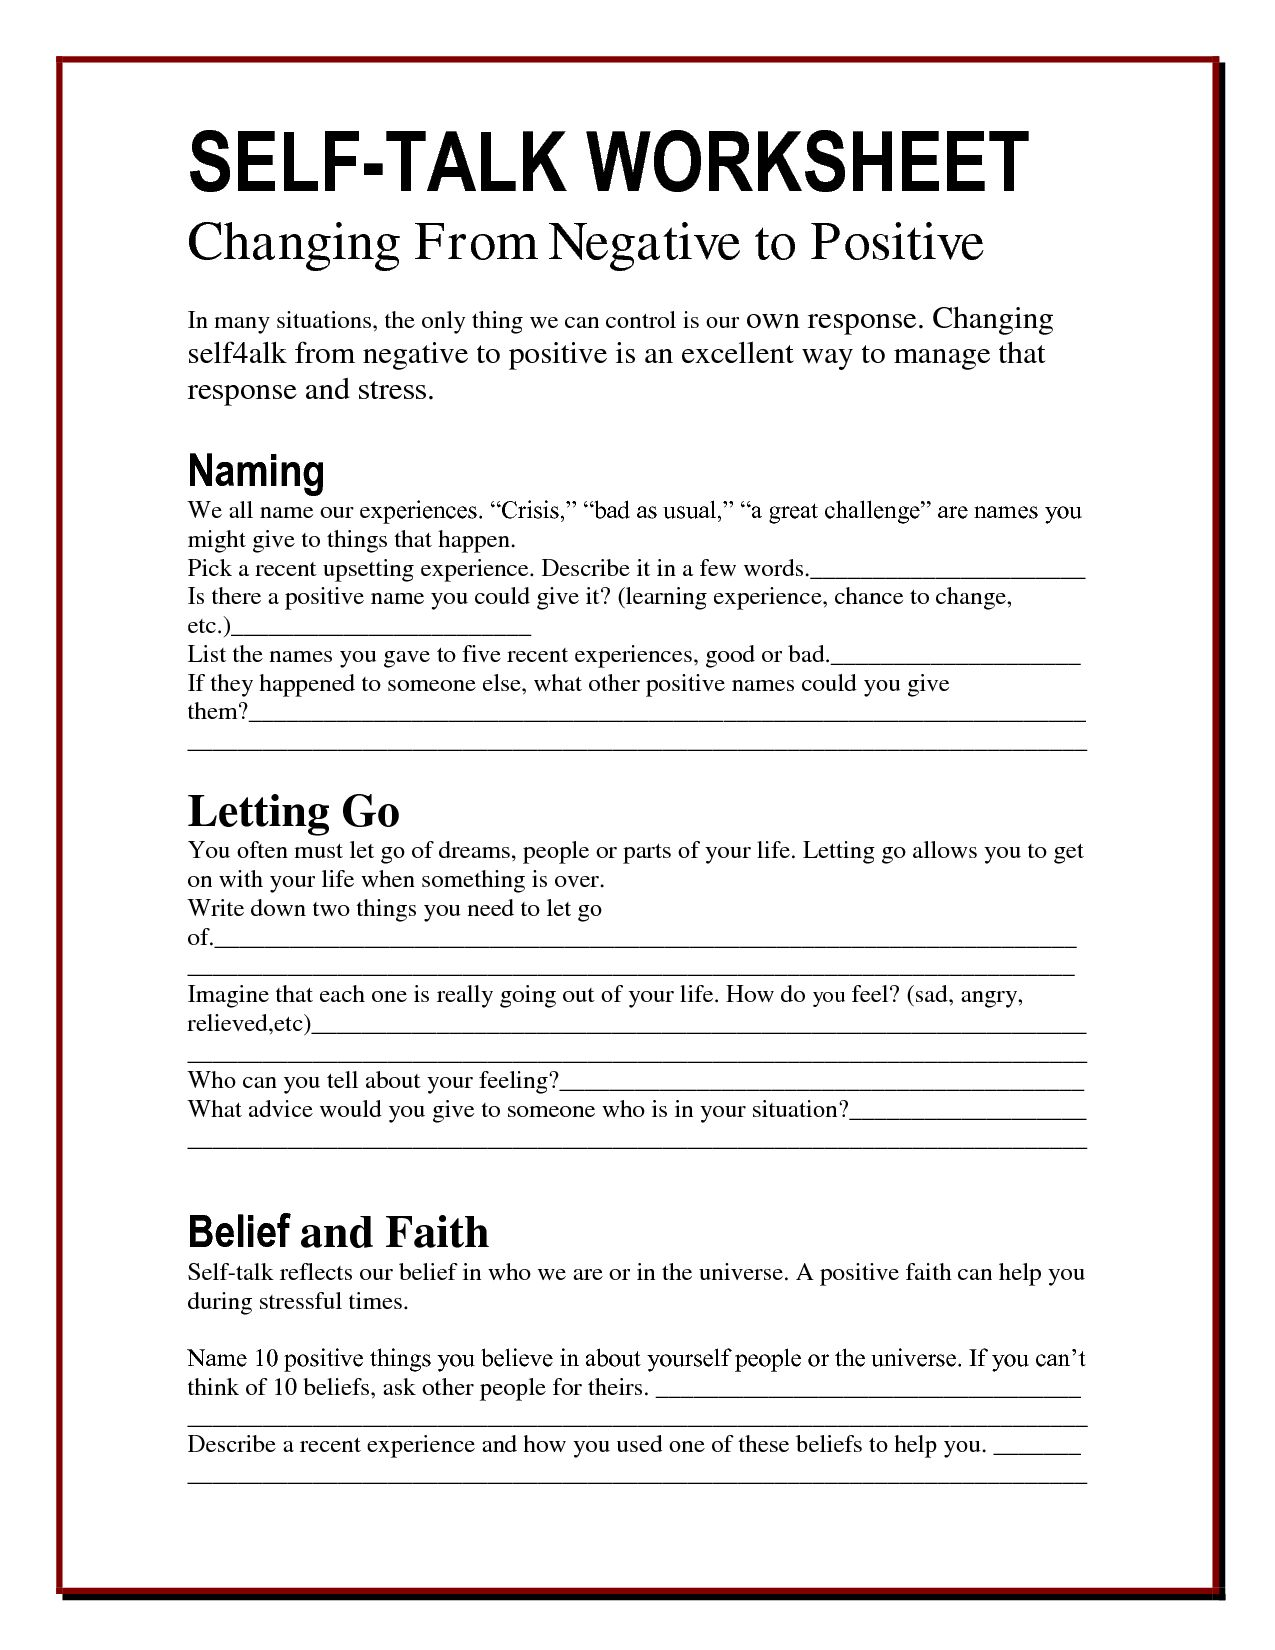 worksheet Cognitive Behavioral Therapy Worksheet stress management worksheets handout workshop attitude shifting pinterest summer health and workshop